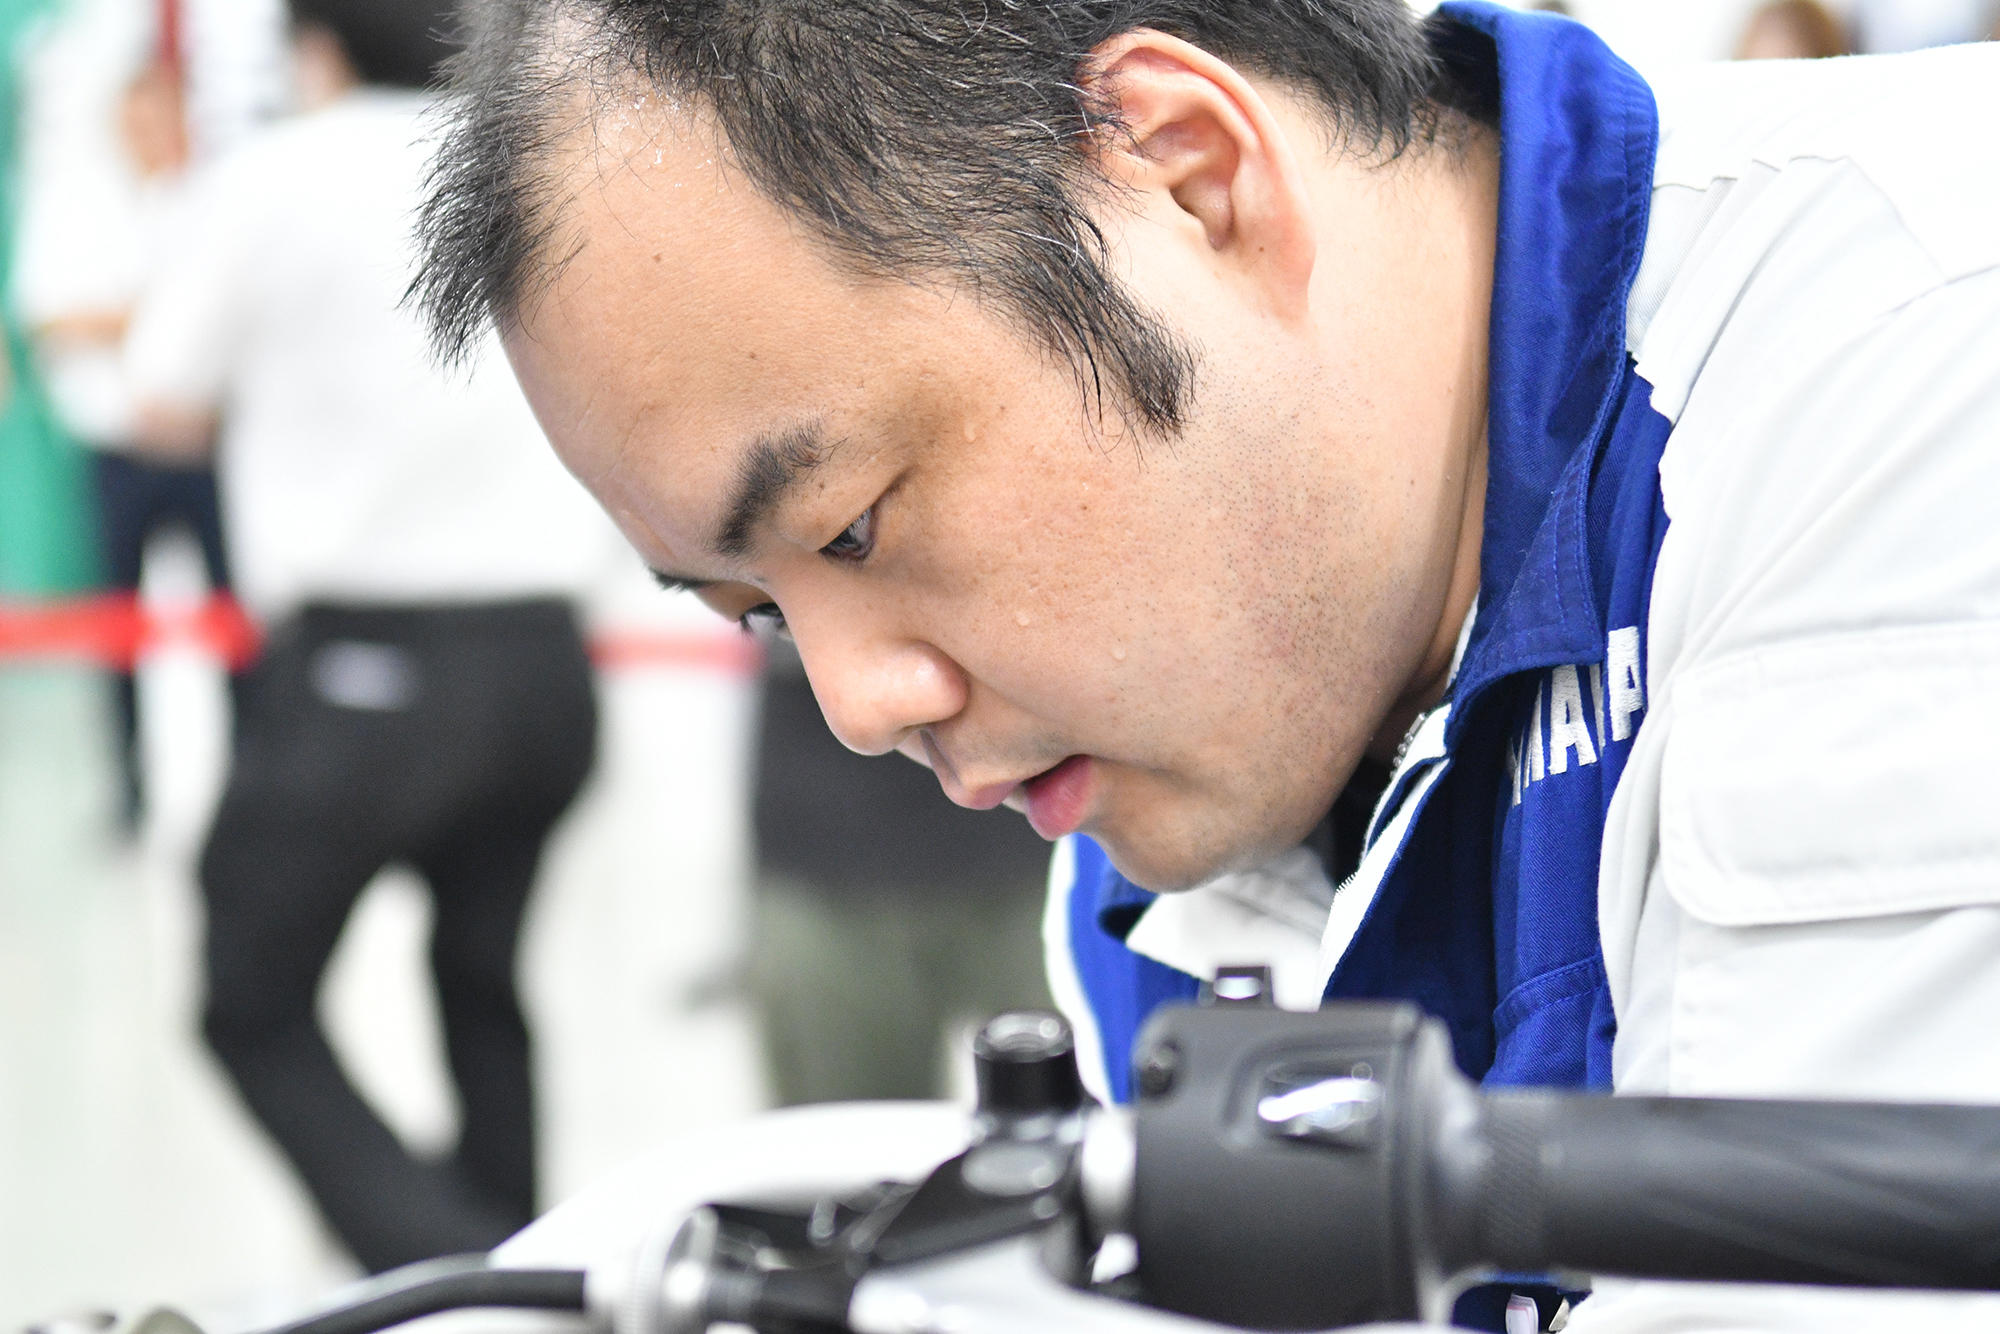 今回YAMAHA World Technician GP